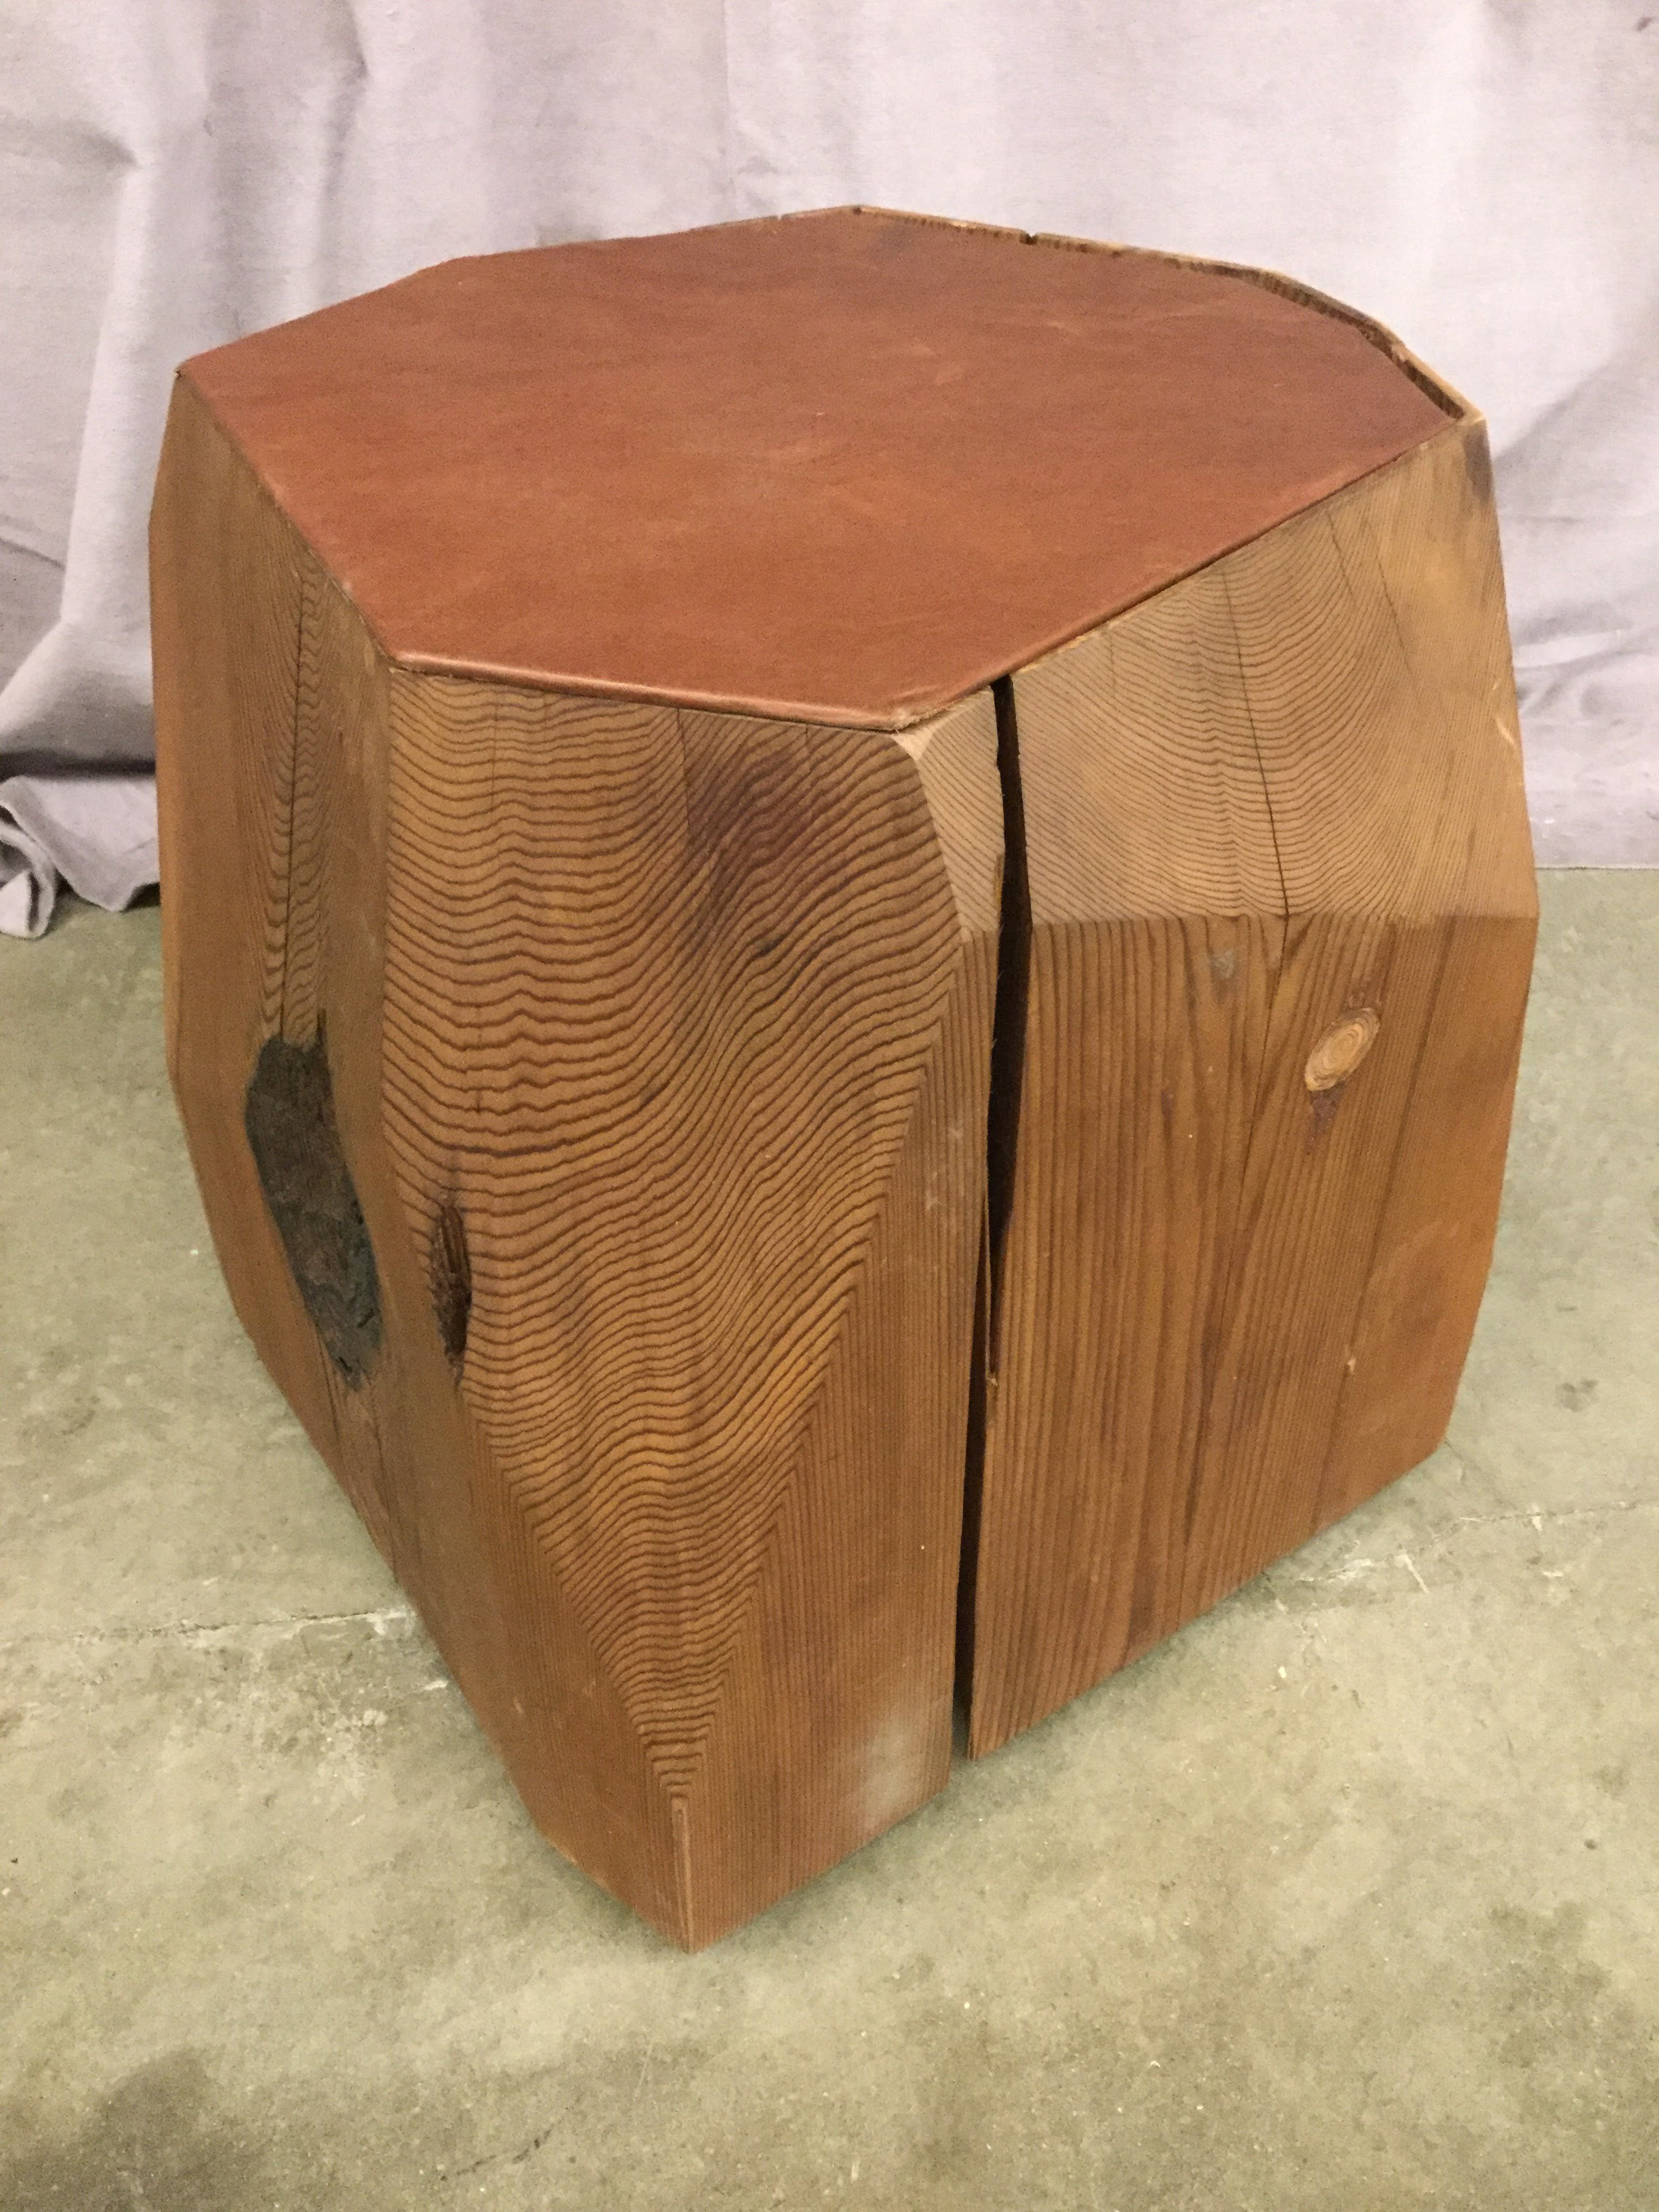 accent table stool faceted red cedar log inset leather brown round upholstered steel top home hardware furniture plexiglass modern wood coffee electric wall clock ashley sofa